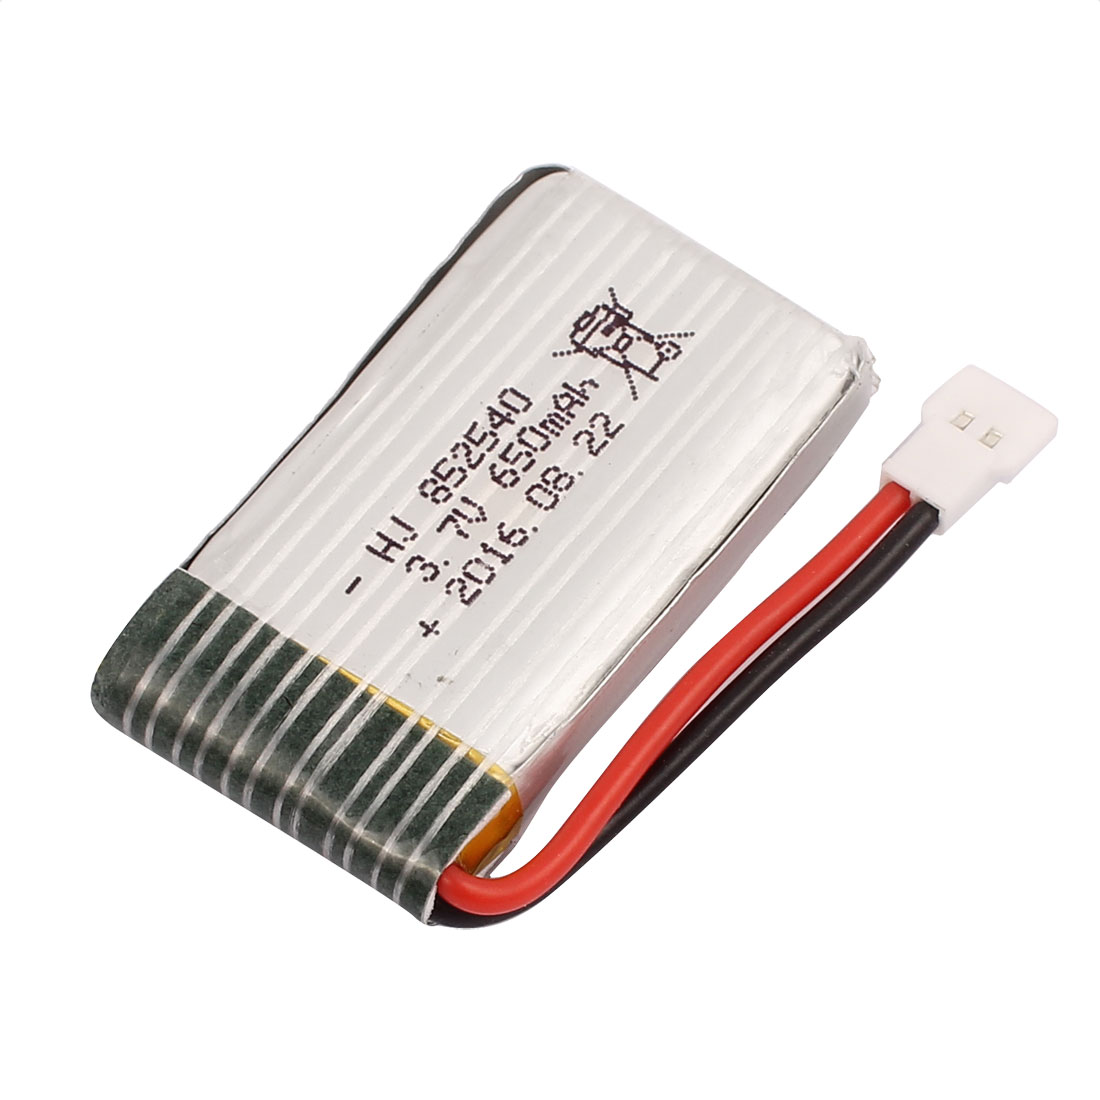 3.7V 650mAh Charging Lithium Polymer Li-po Battery MX2.0-2P Connector for RC Airplane Aircraft